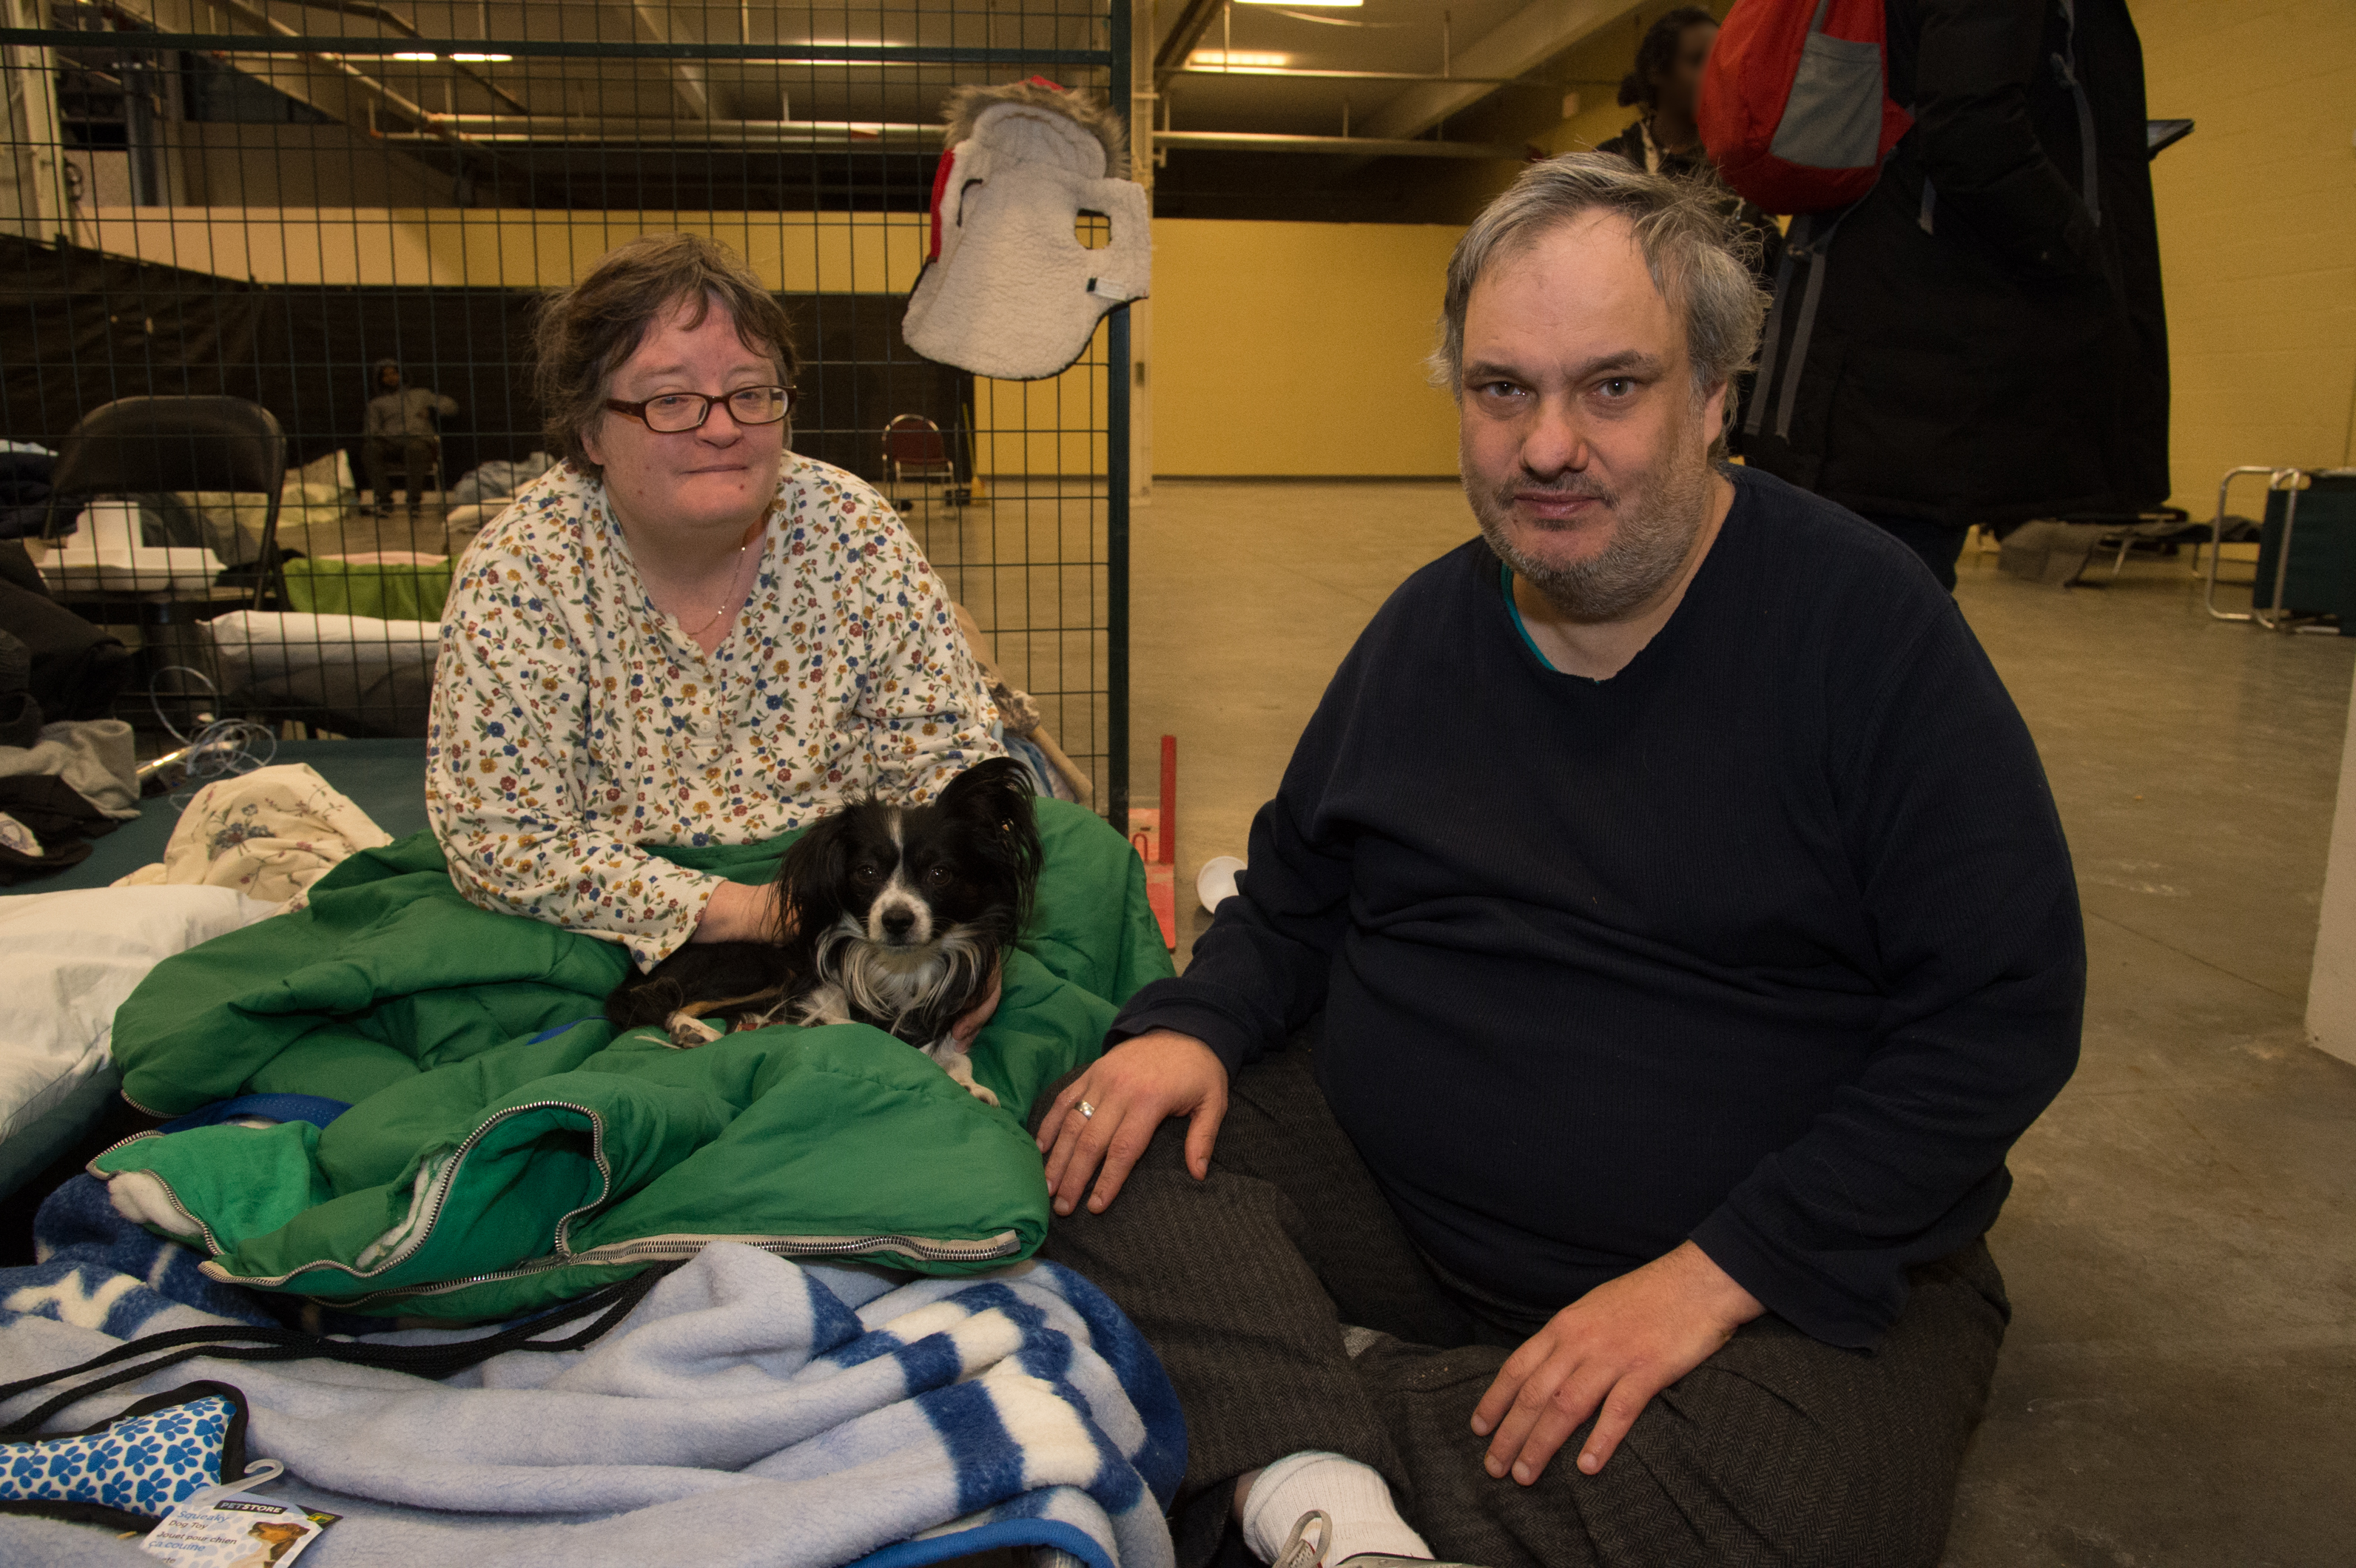 Dawn Frazer and Rob Bizior at the Better Living Centre sitting on the floor with their dog